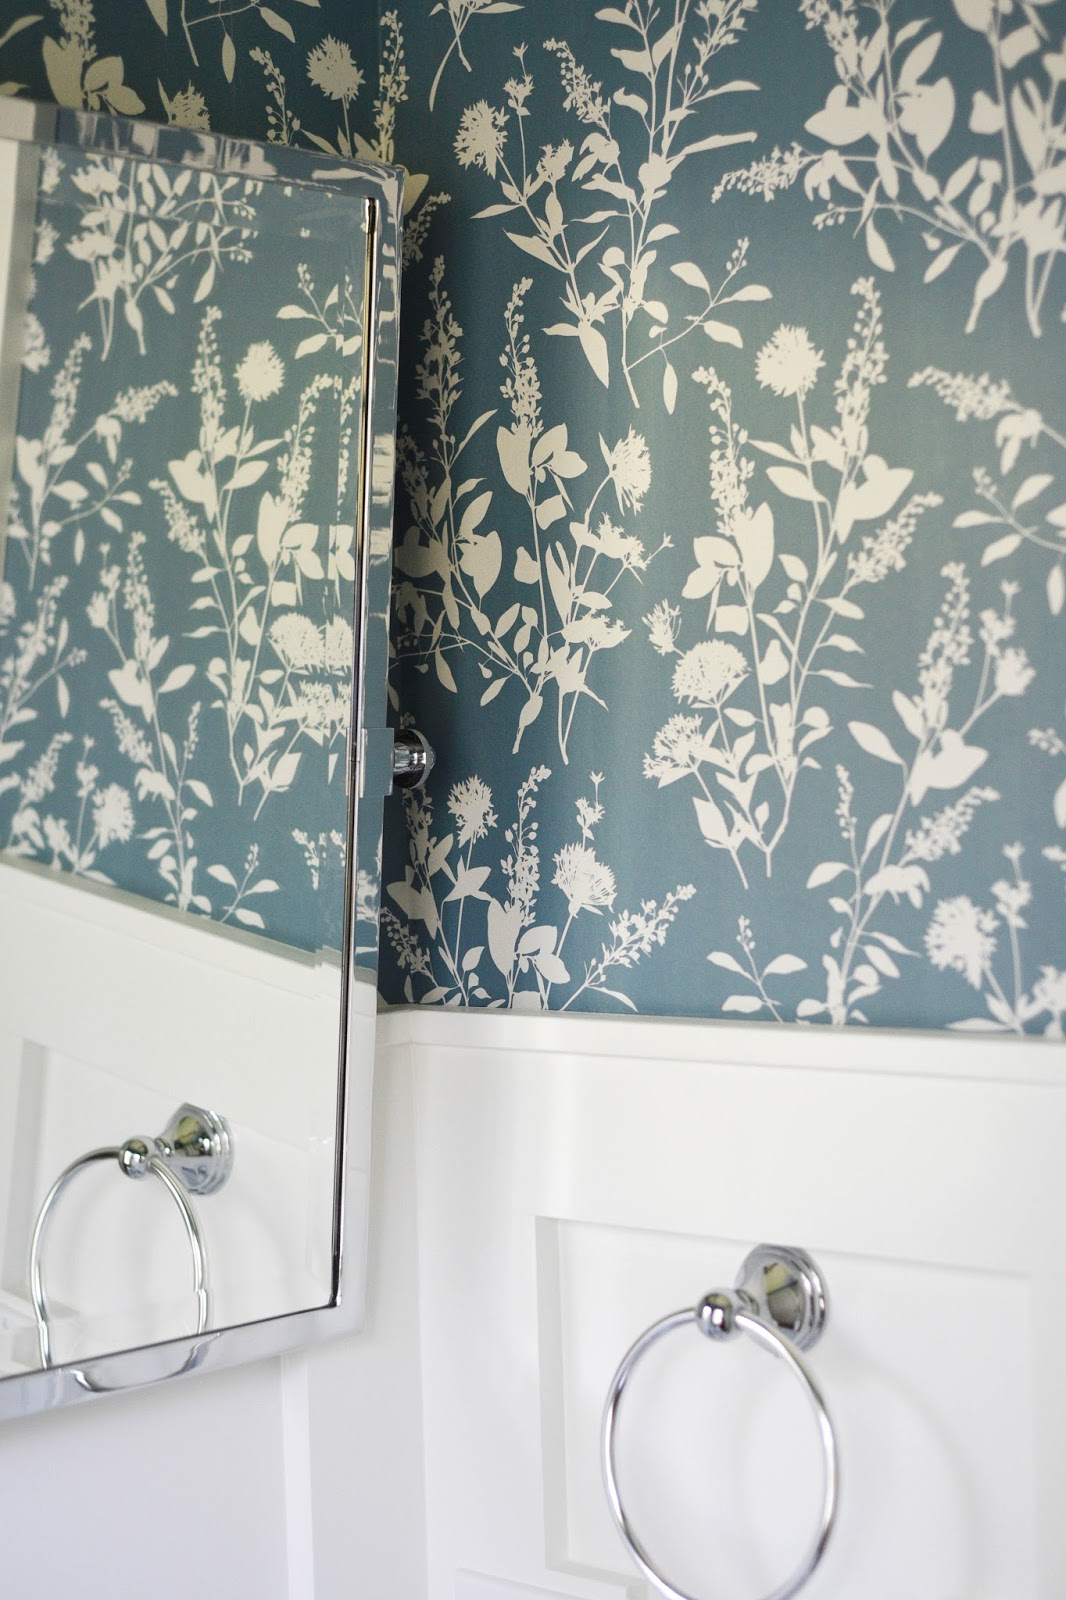 Wallpaper powder room home with keki - Powder room wallpaper ideas ...